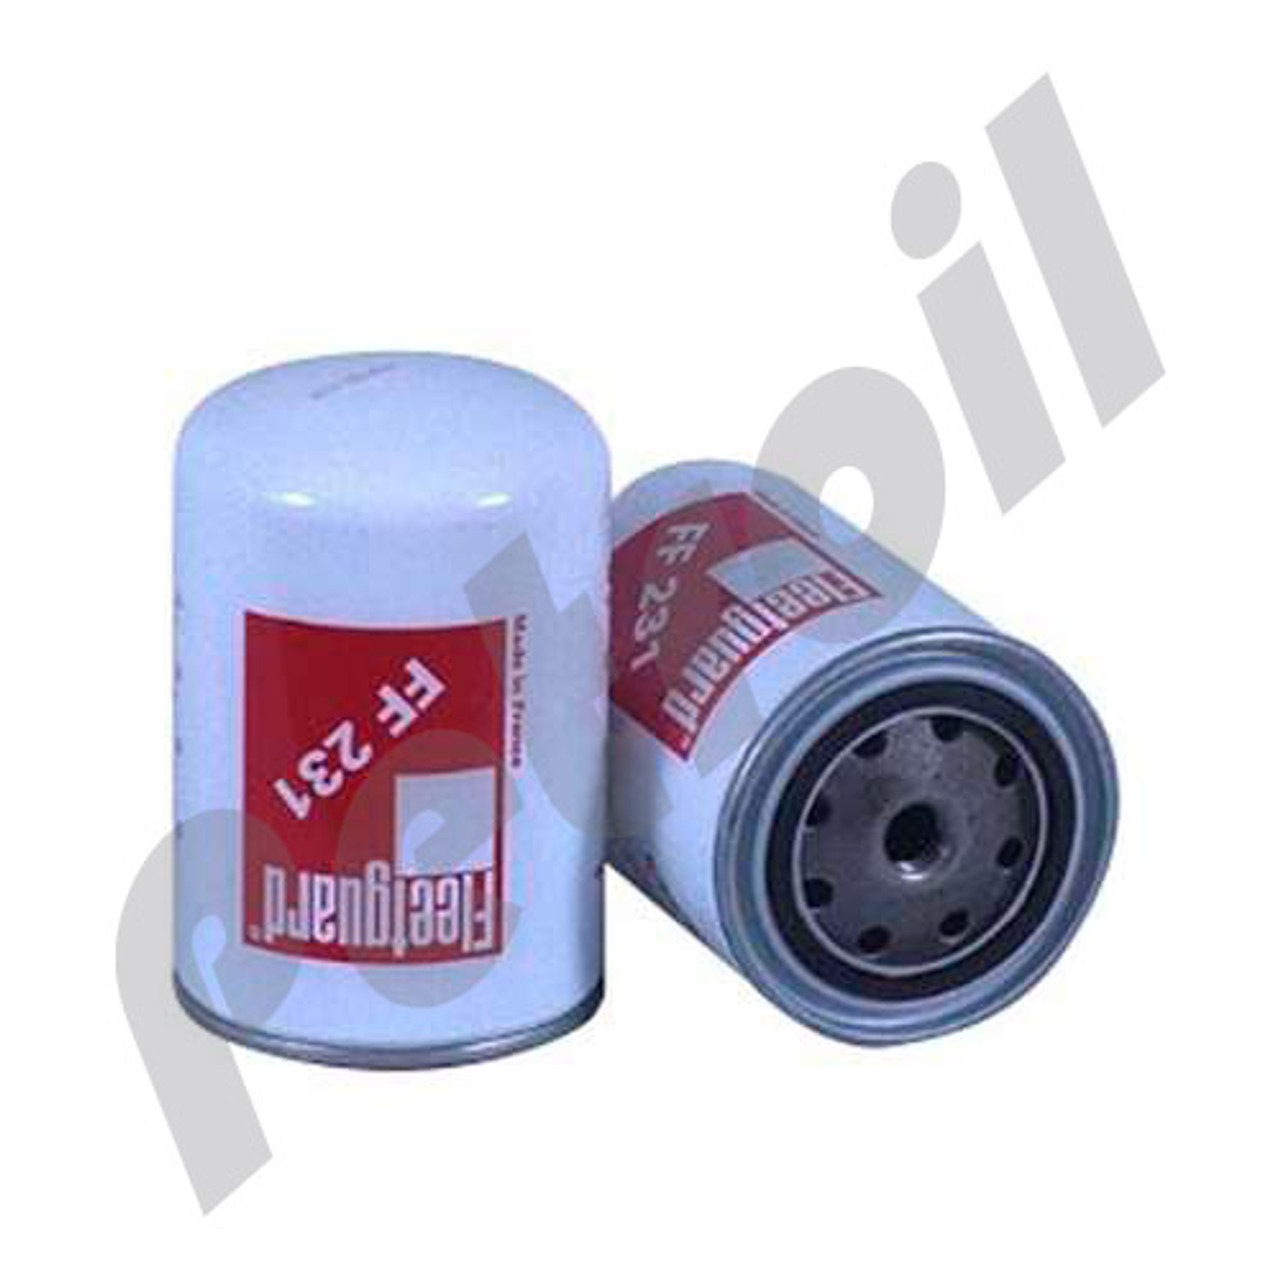 [DIAGRAM_5FD]  FF231 Fleetguard Fuel Filter Spin-on Deutz | Deutz Fuel Filters |  | Petroil USA